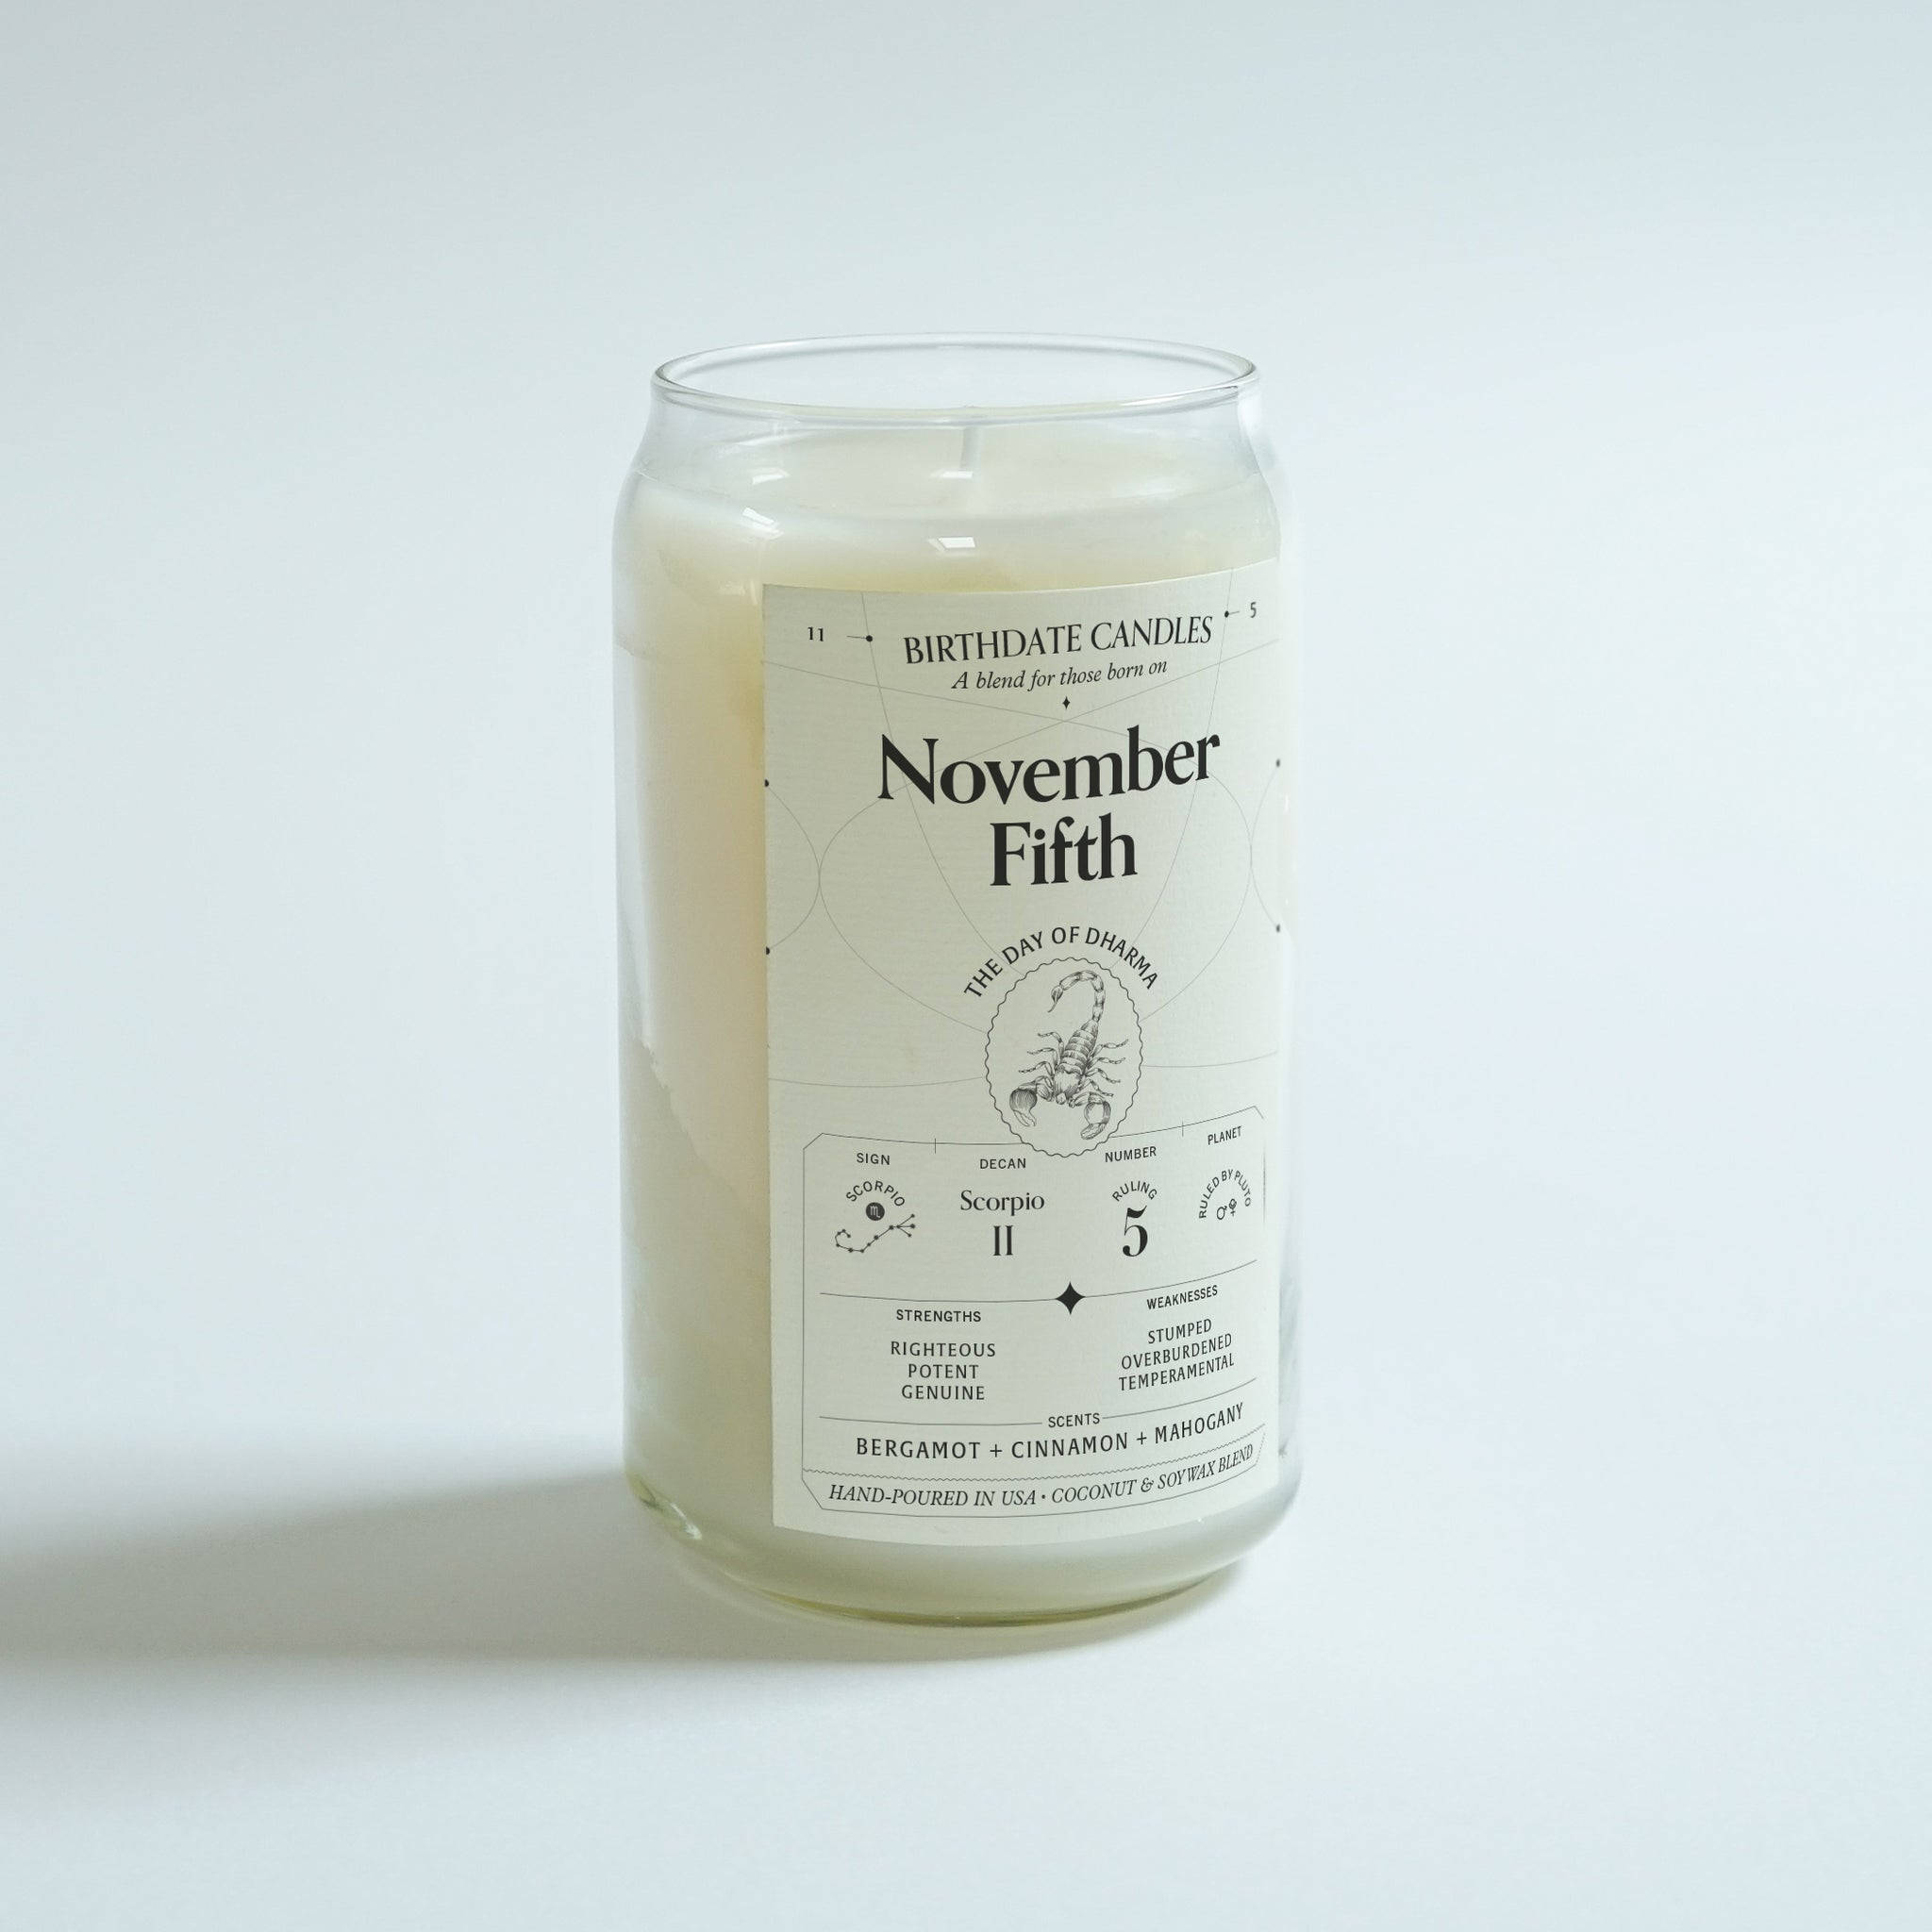 The November Fifth Candle